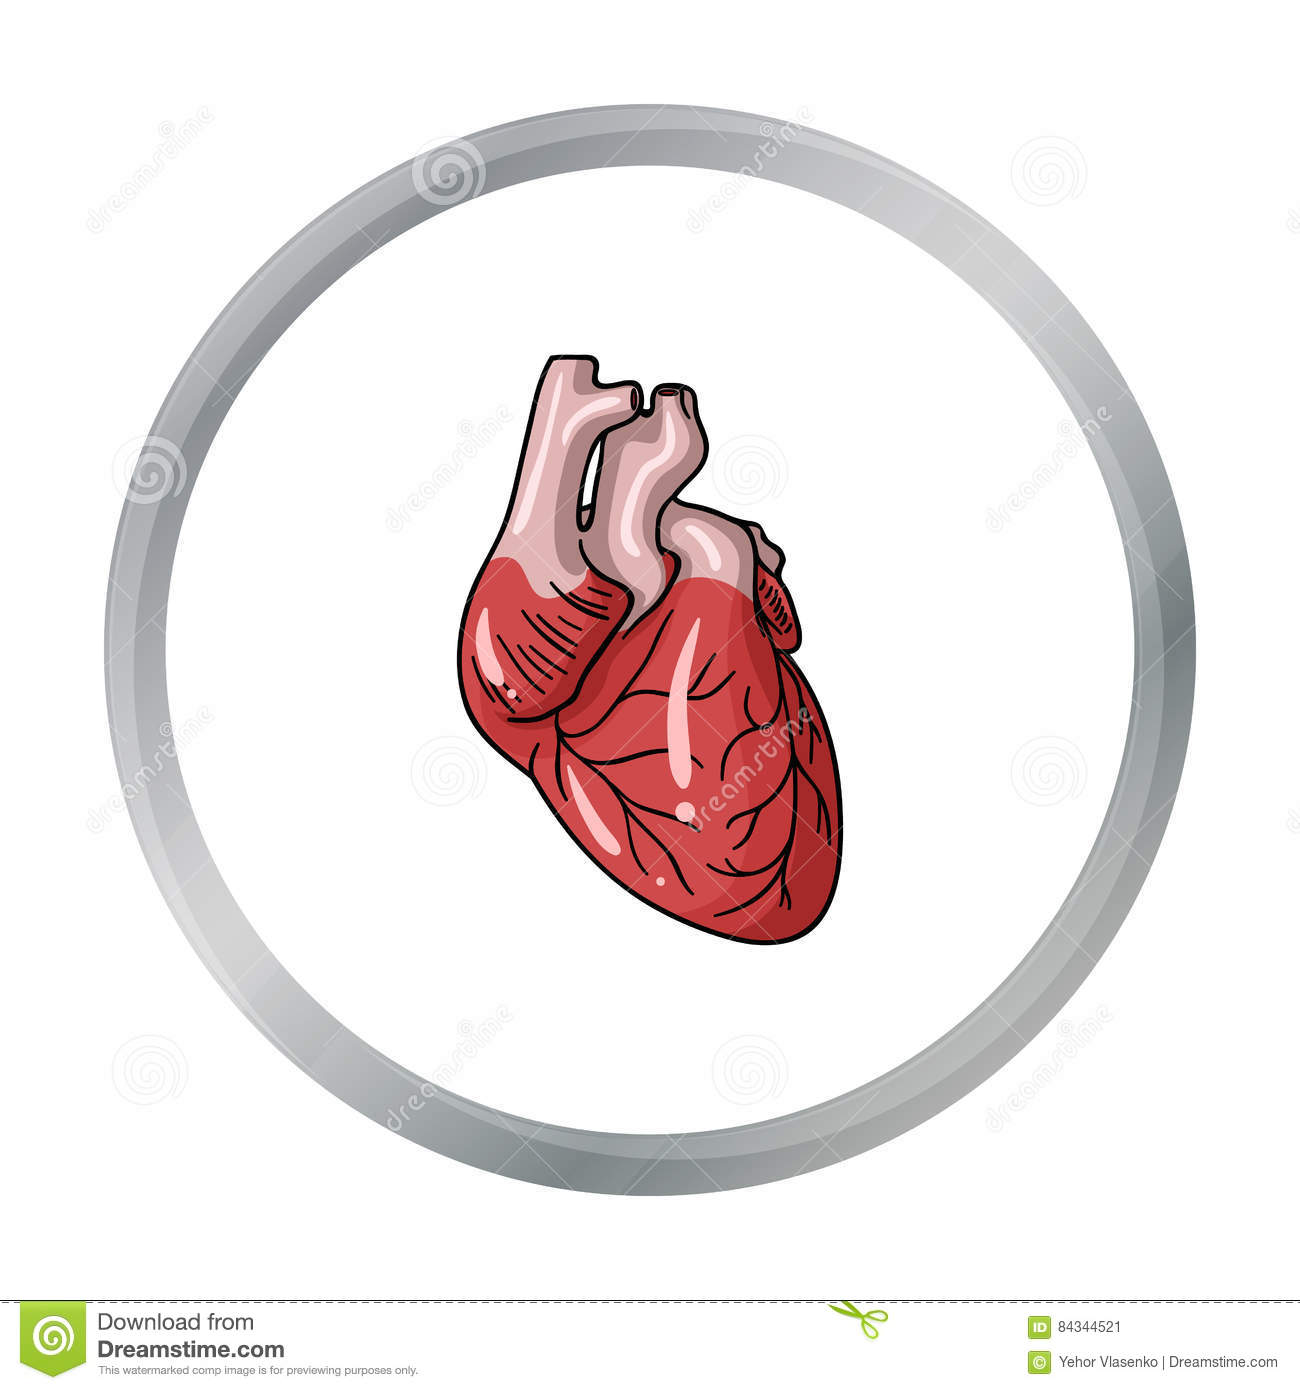 Human Heart Icon In Cartoon Style Isolated On White